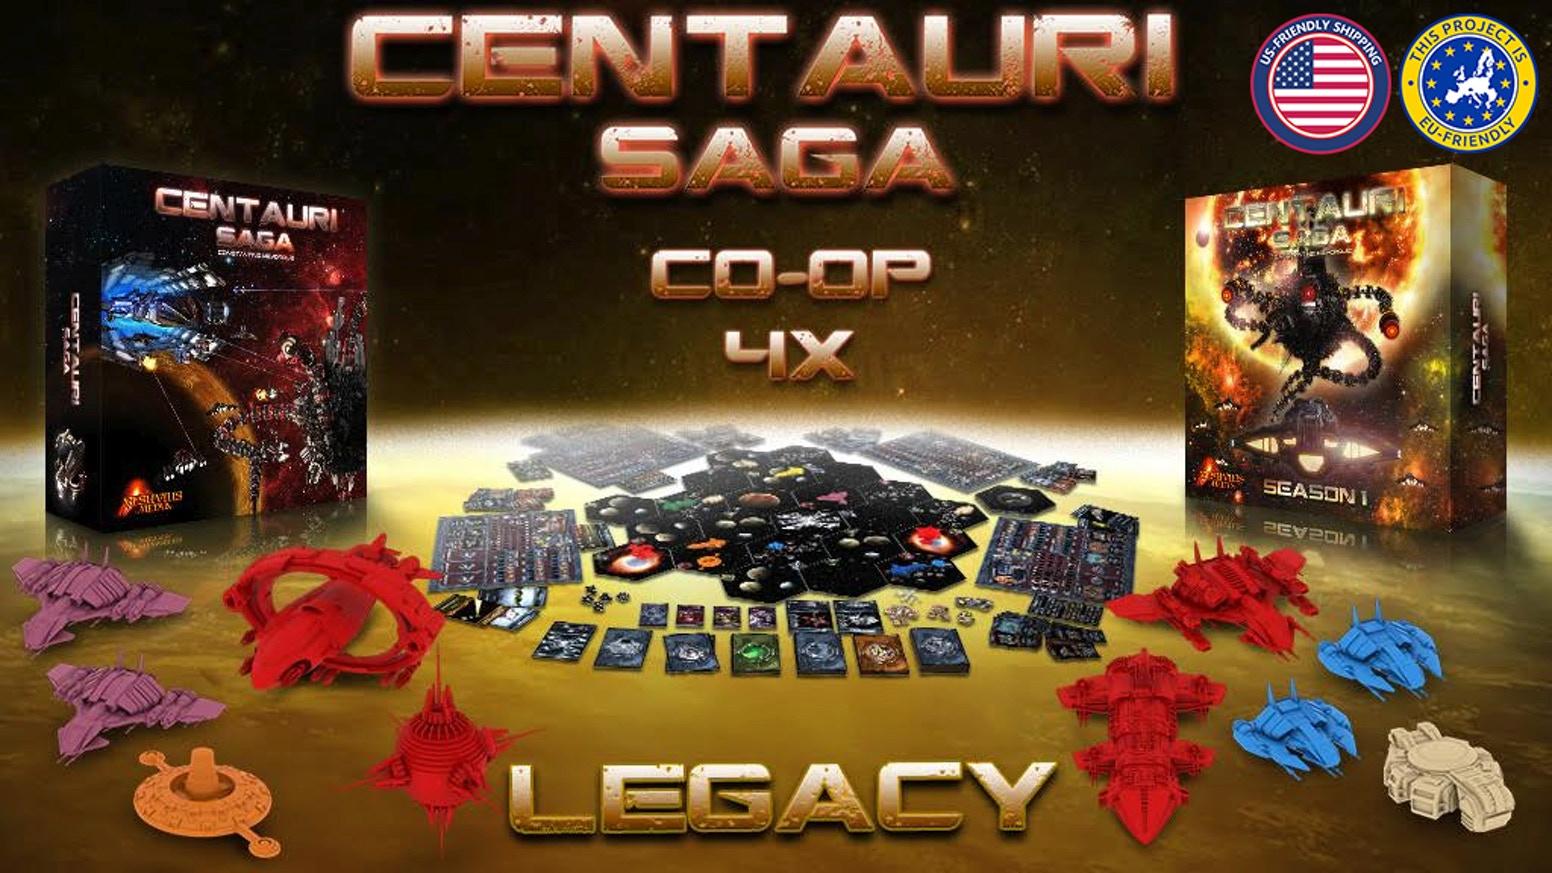 A Sci-fi, 4X, Co-op, LEGACY adventure board game for 1 to 4 players.